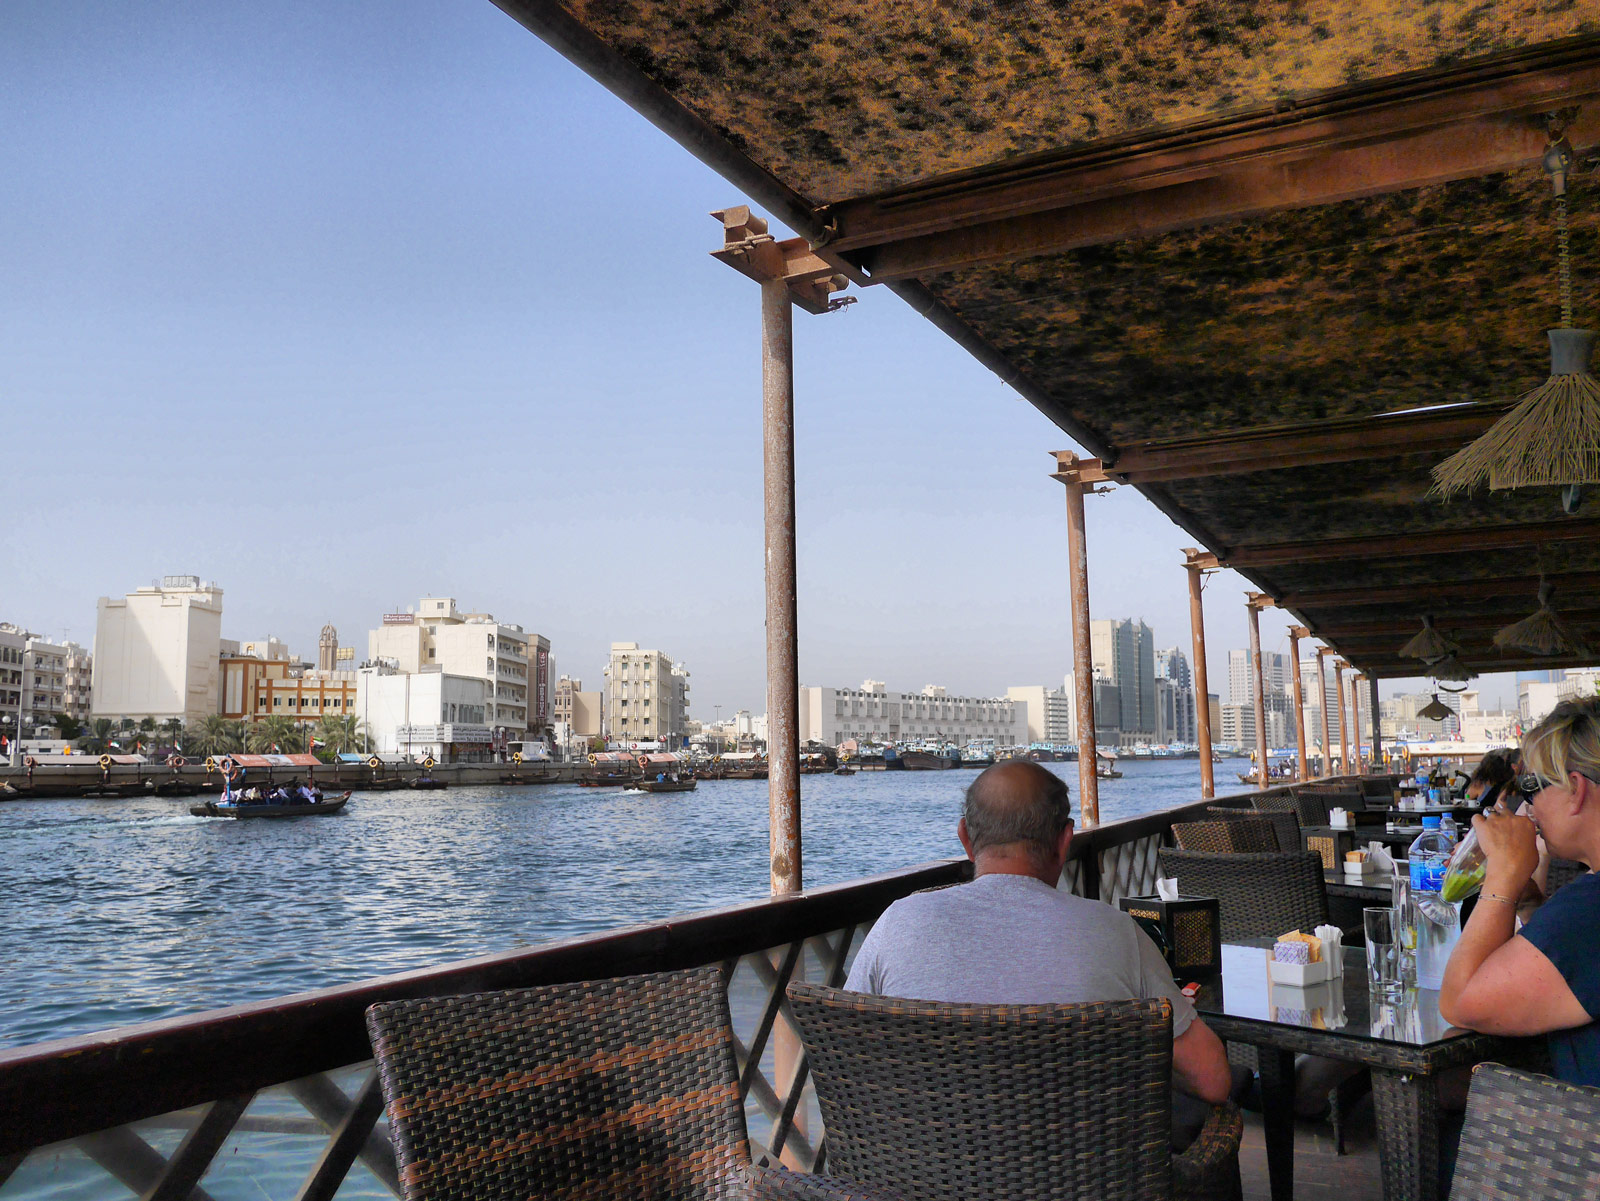 Bayt Al Wakeel: Restaurant With a View - Dubai, United Arab Emirates